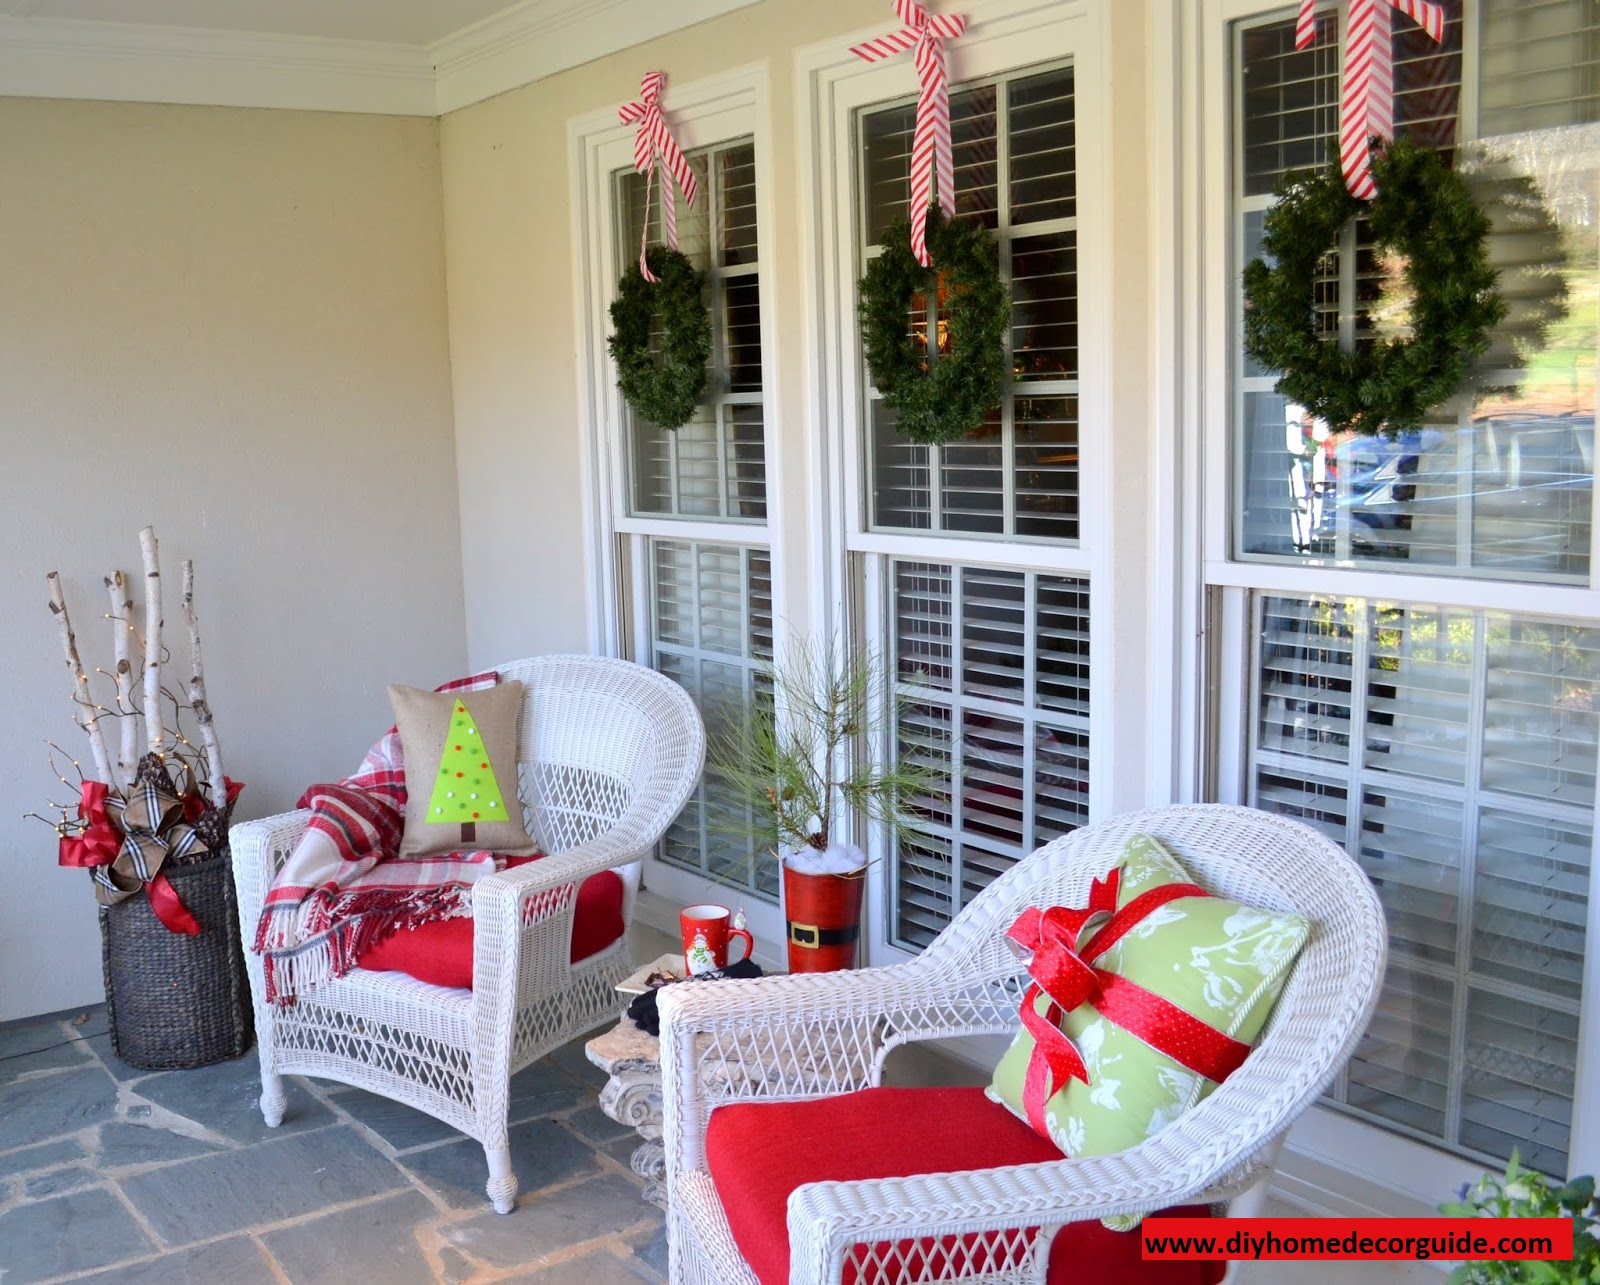 20 diy outdoor christmas decorations ideas 2014 for Exterior home decor ideas